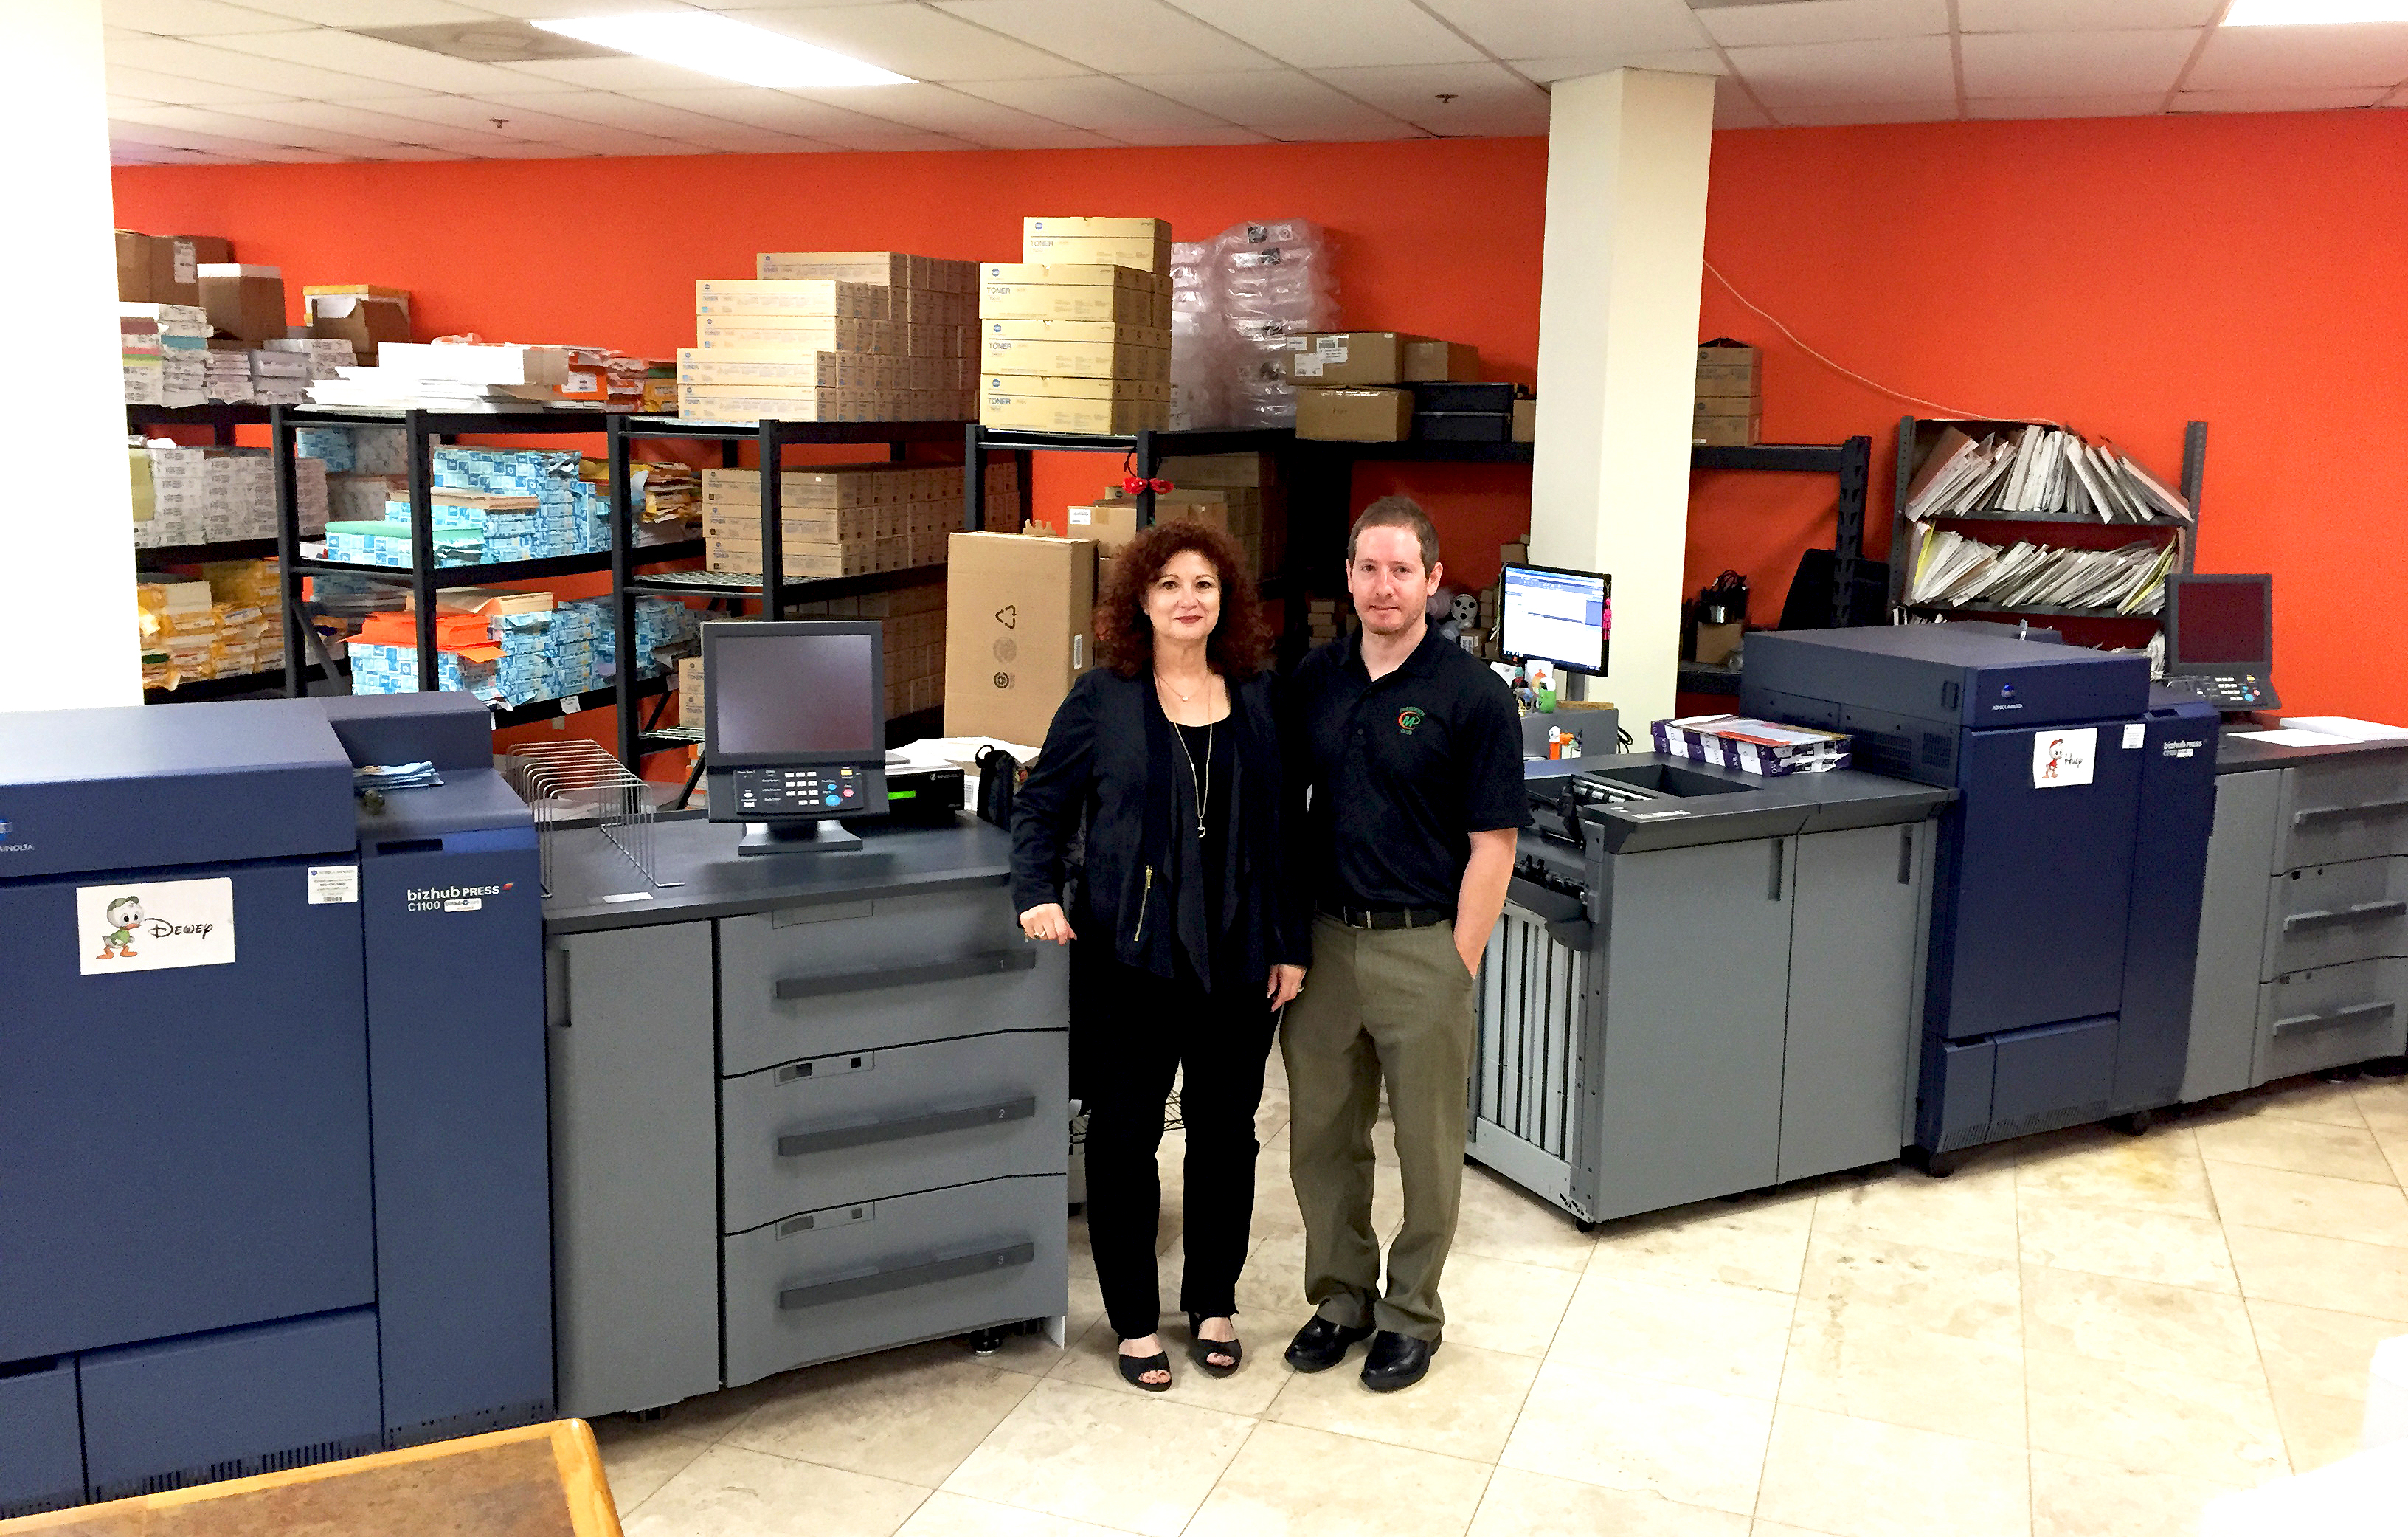 Minuteman Press franchise owner Matthew Perry (right) and his mother Gail alongside two Konica Minolta bizhub PRESS® 1100s. http://www.minutemanpressfranchise.com